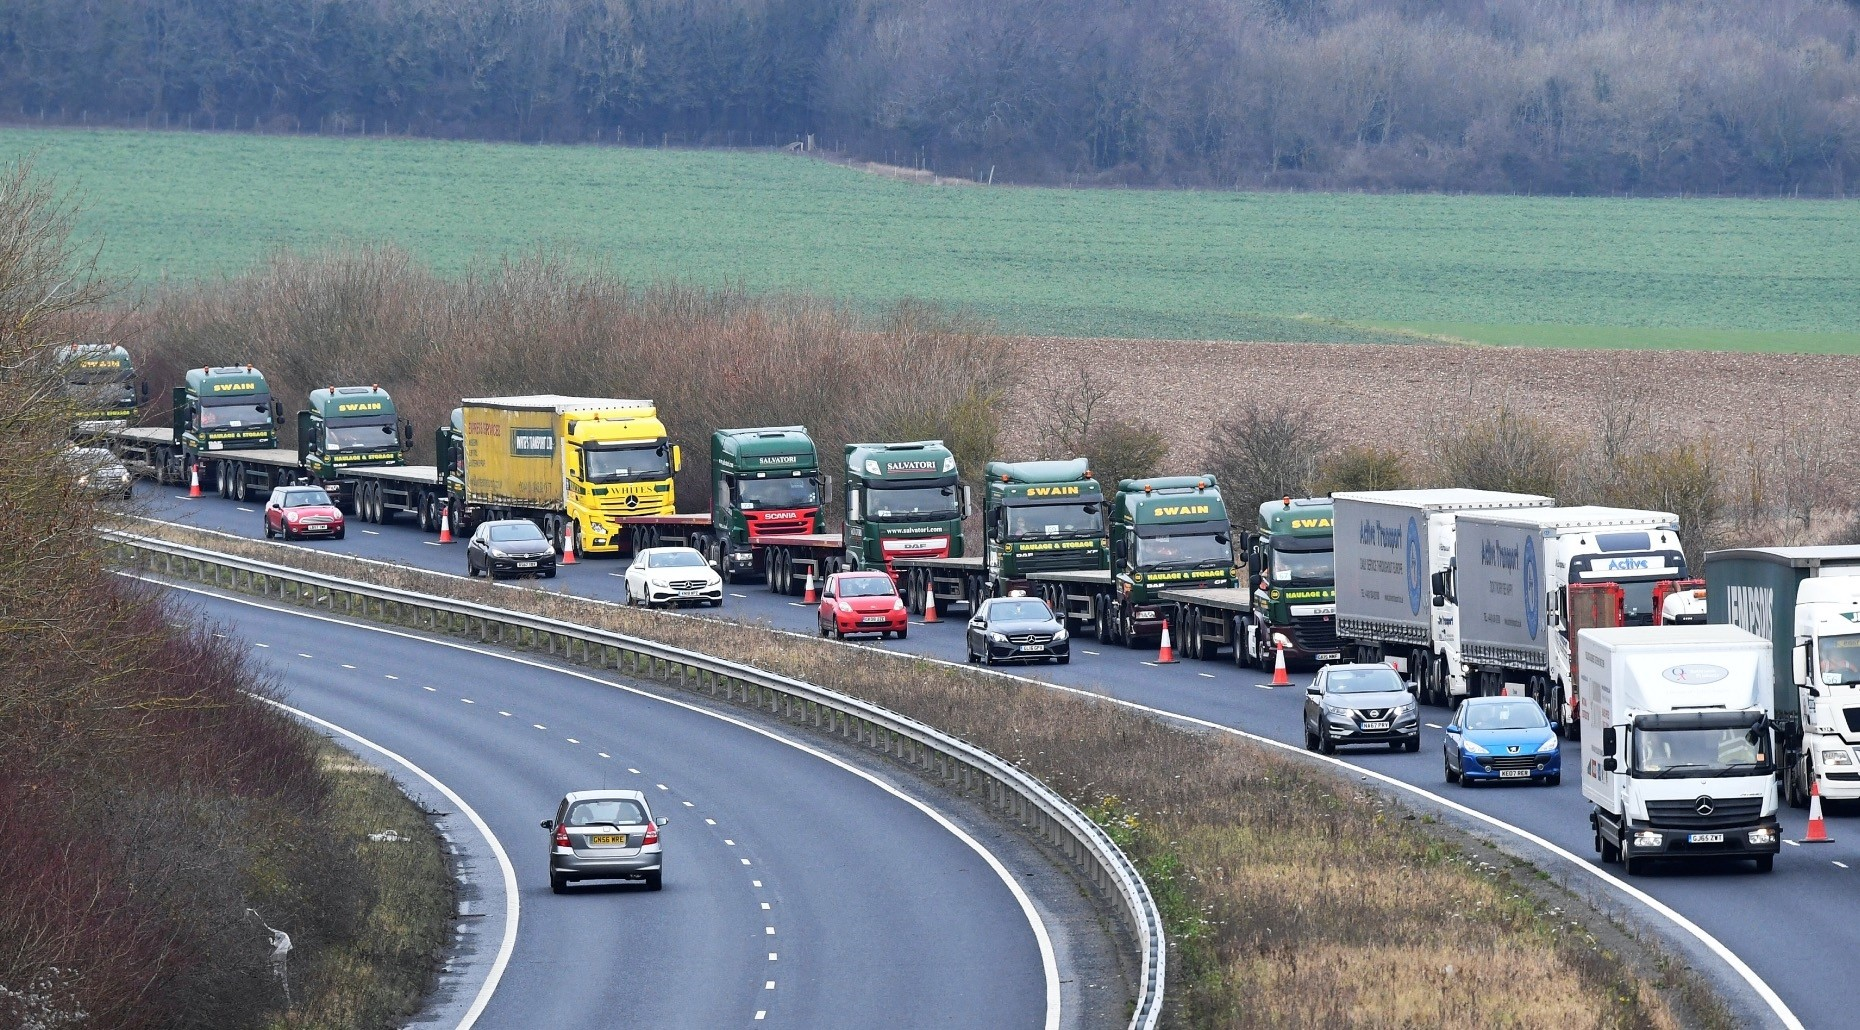 A line of trucks seen during a trial between the disused Manston Airport and the Port of Dover on how the road will cope in case of a u201cno-dealu201d Brexit in Kent, yesterday.